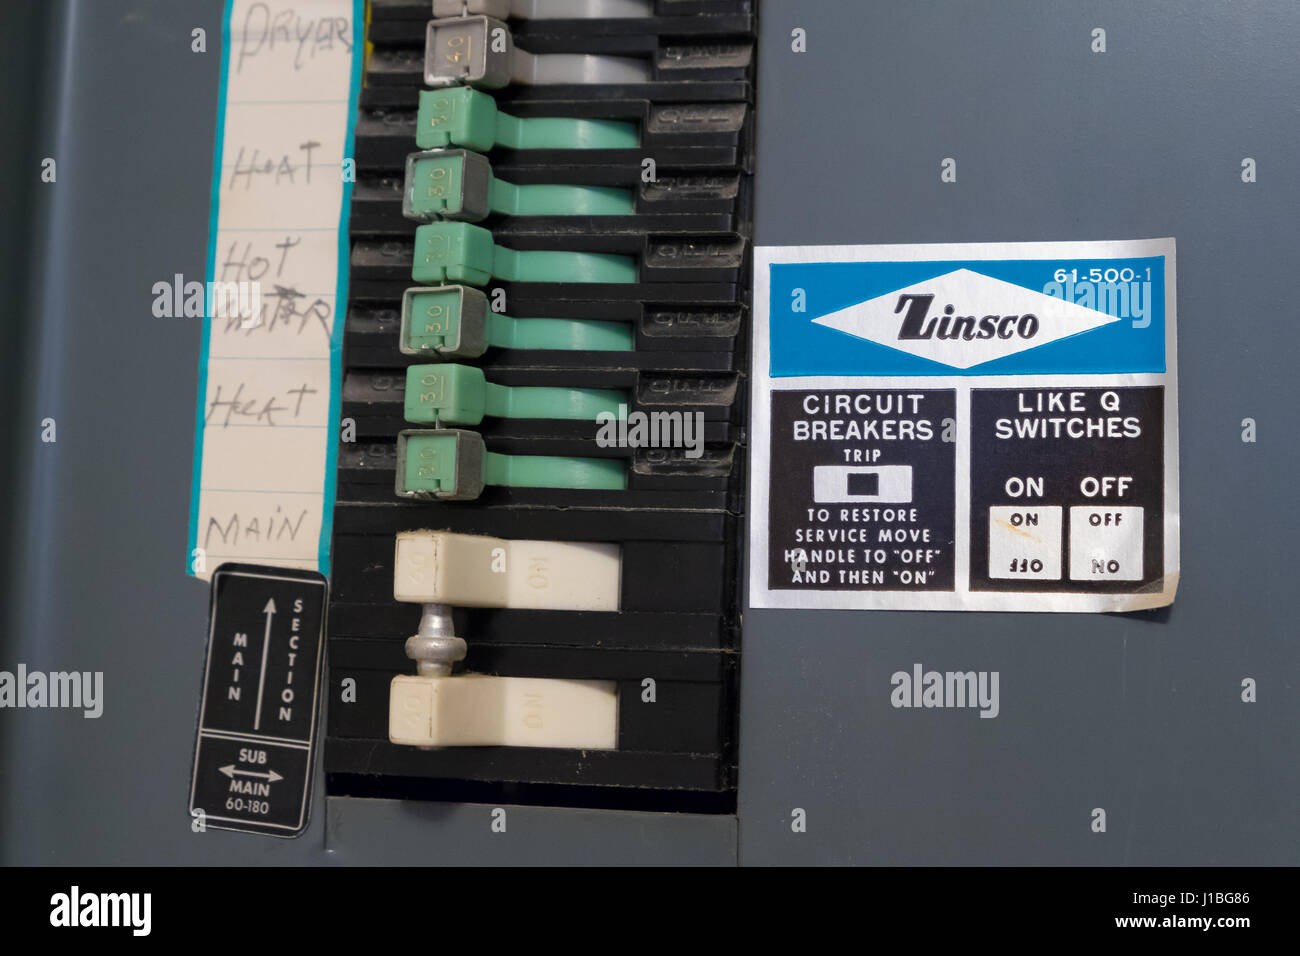 Zinsco Fuse Box Wiring Library Electrical Panels Panel Buy Circuit Breaker Panelselectrical Springfield Or December 8 2016 Service In An Old